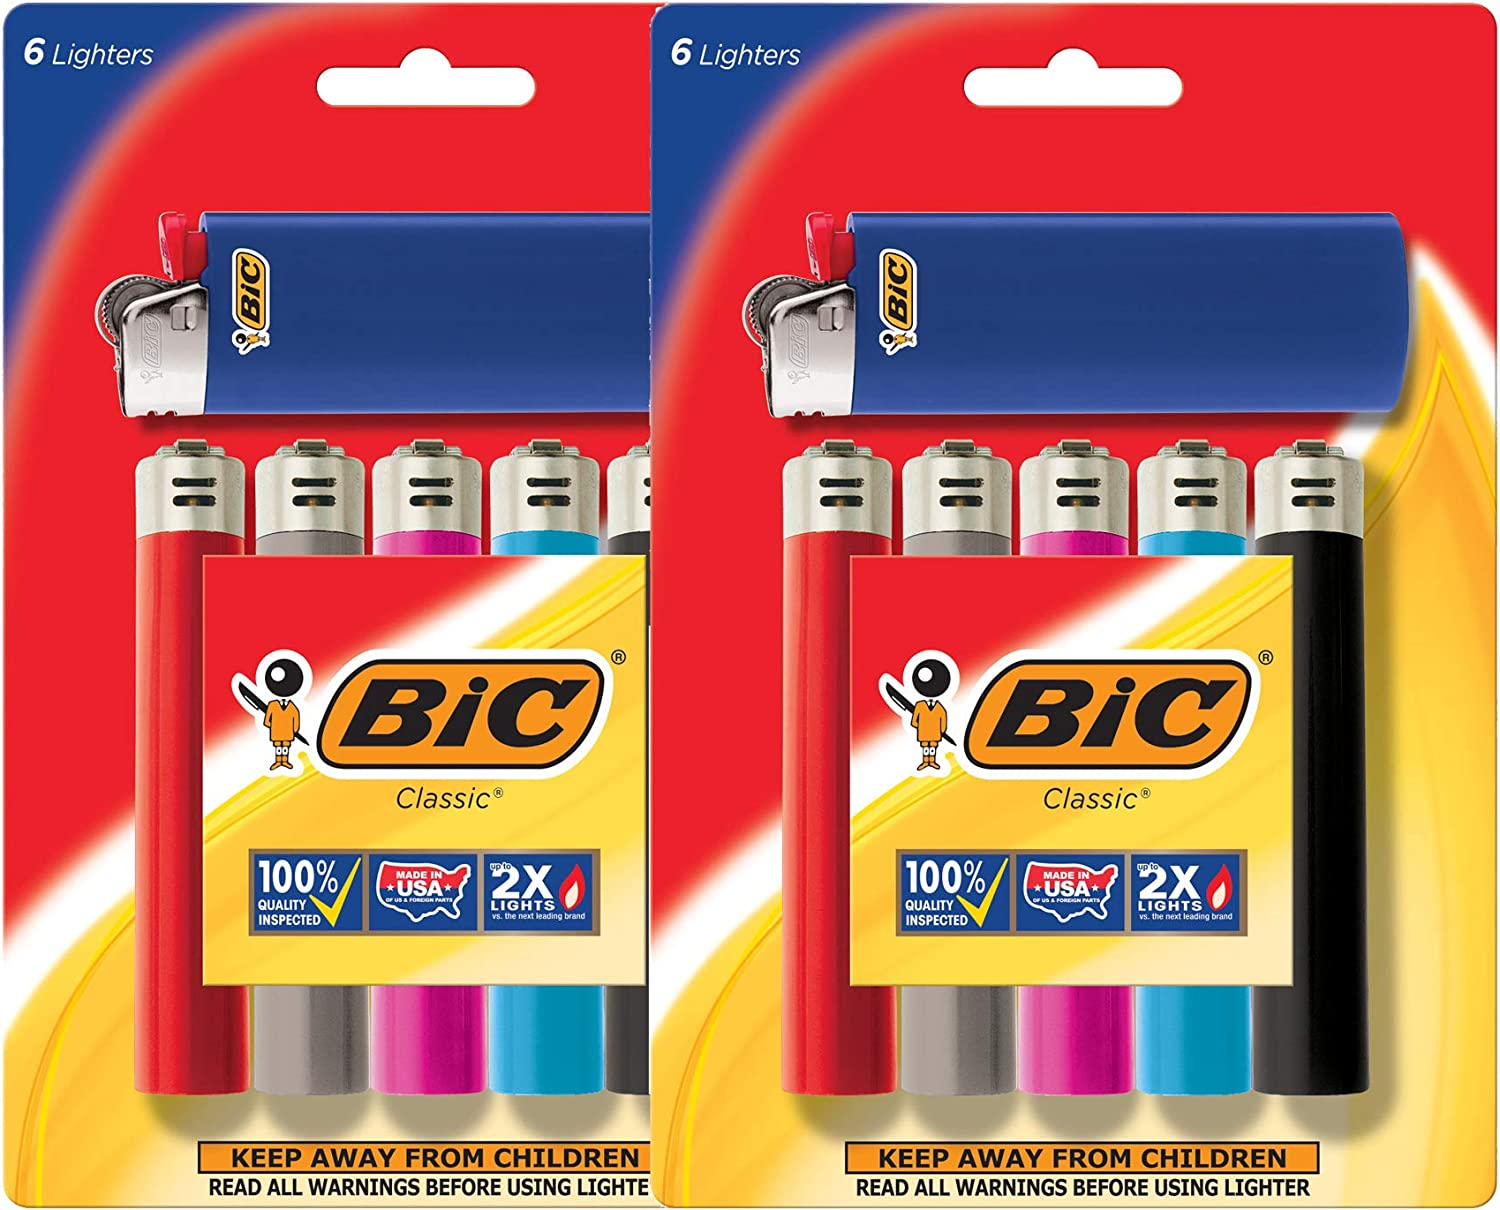 BIC Lighter Classic, Full Size 12 Pieces, Bulk Packaging: Health & Personal Care